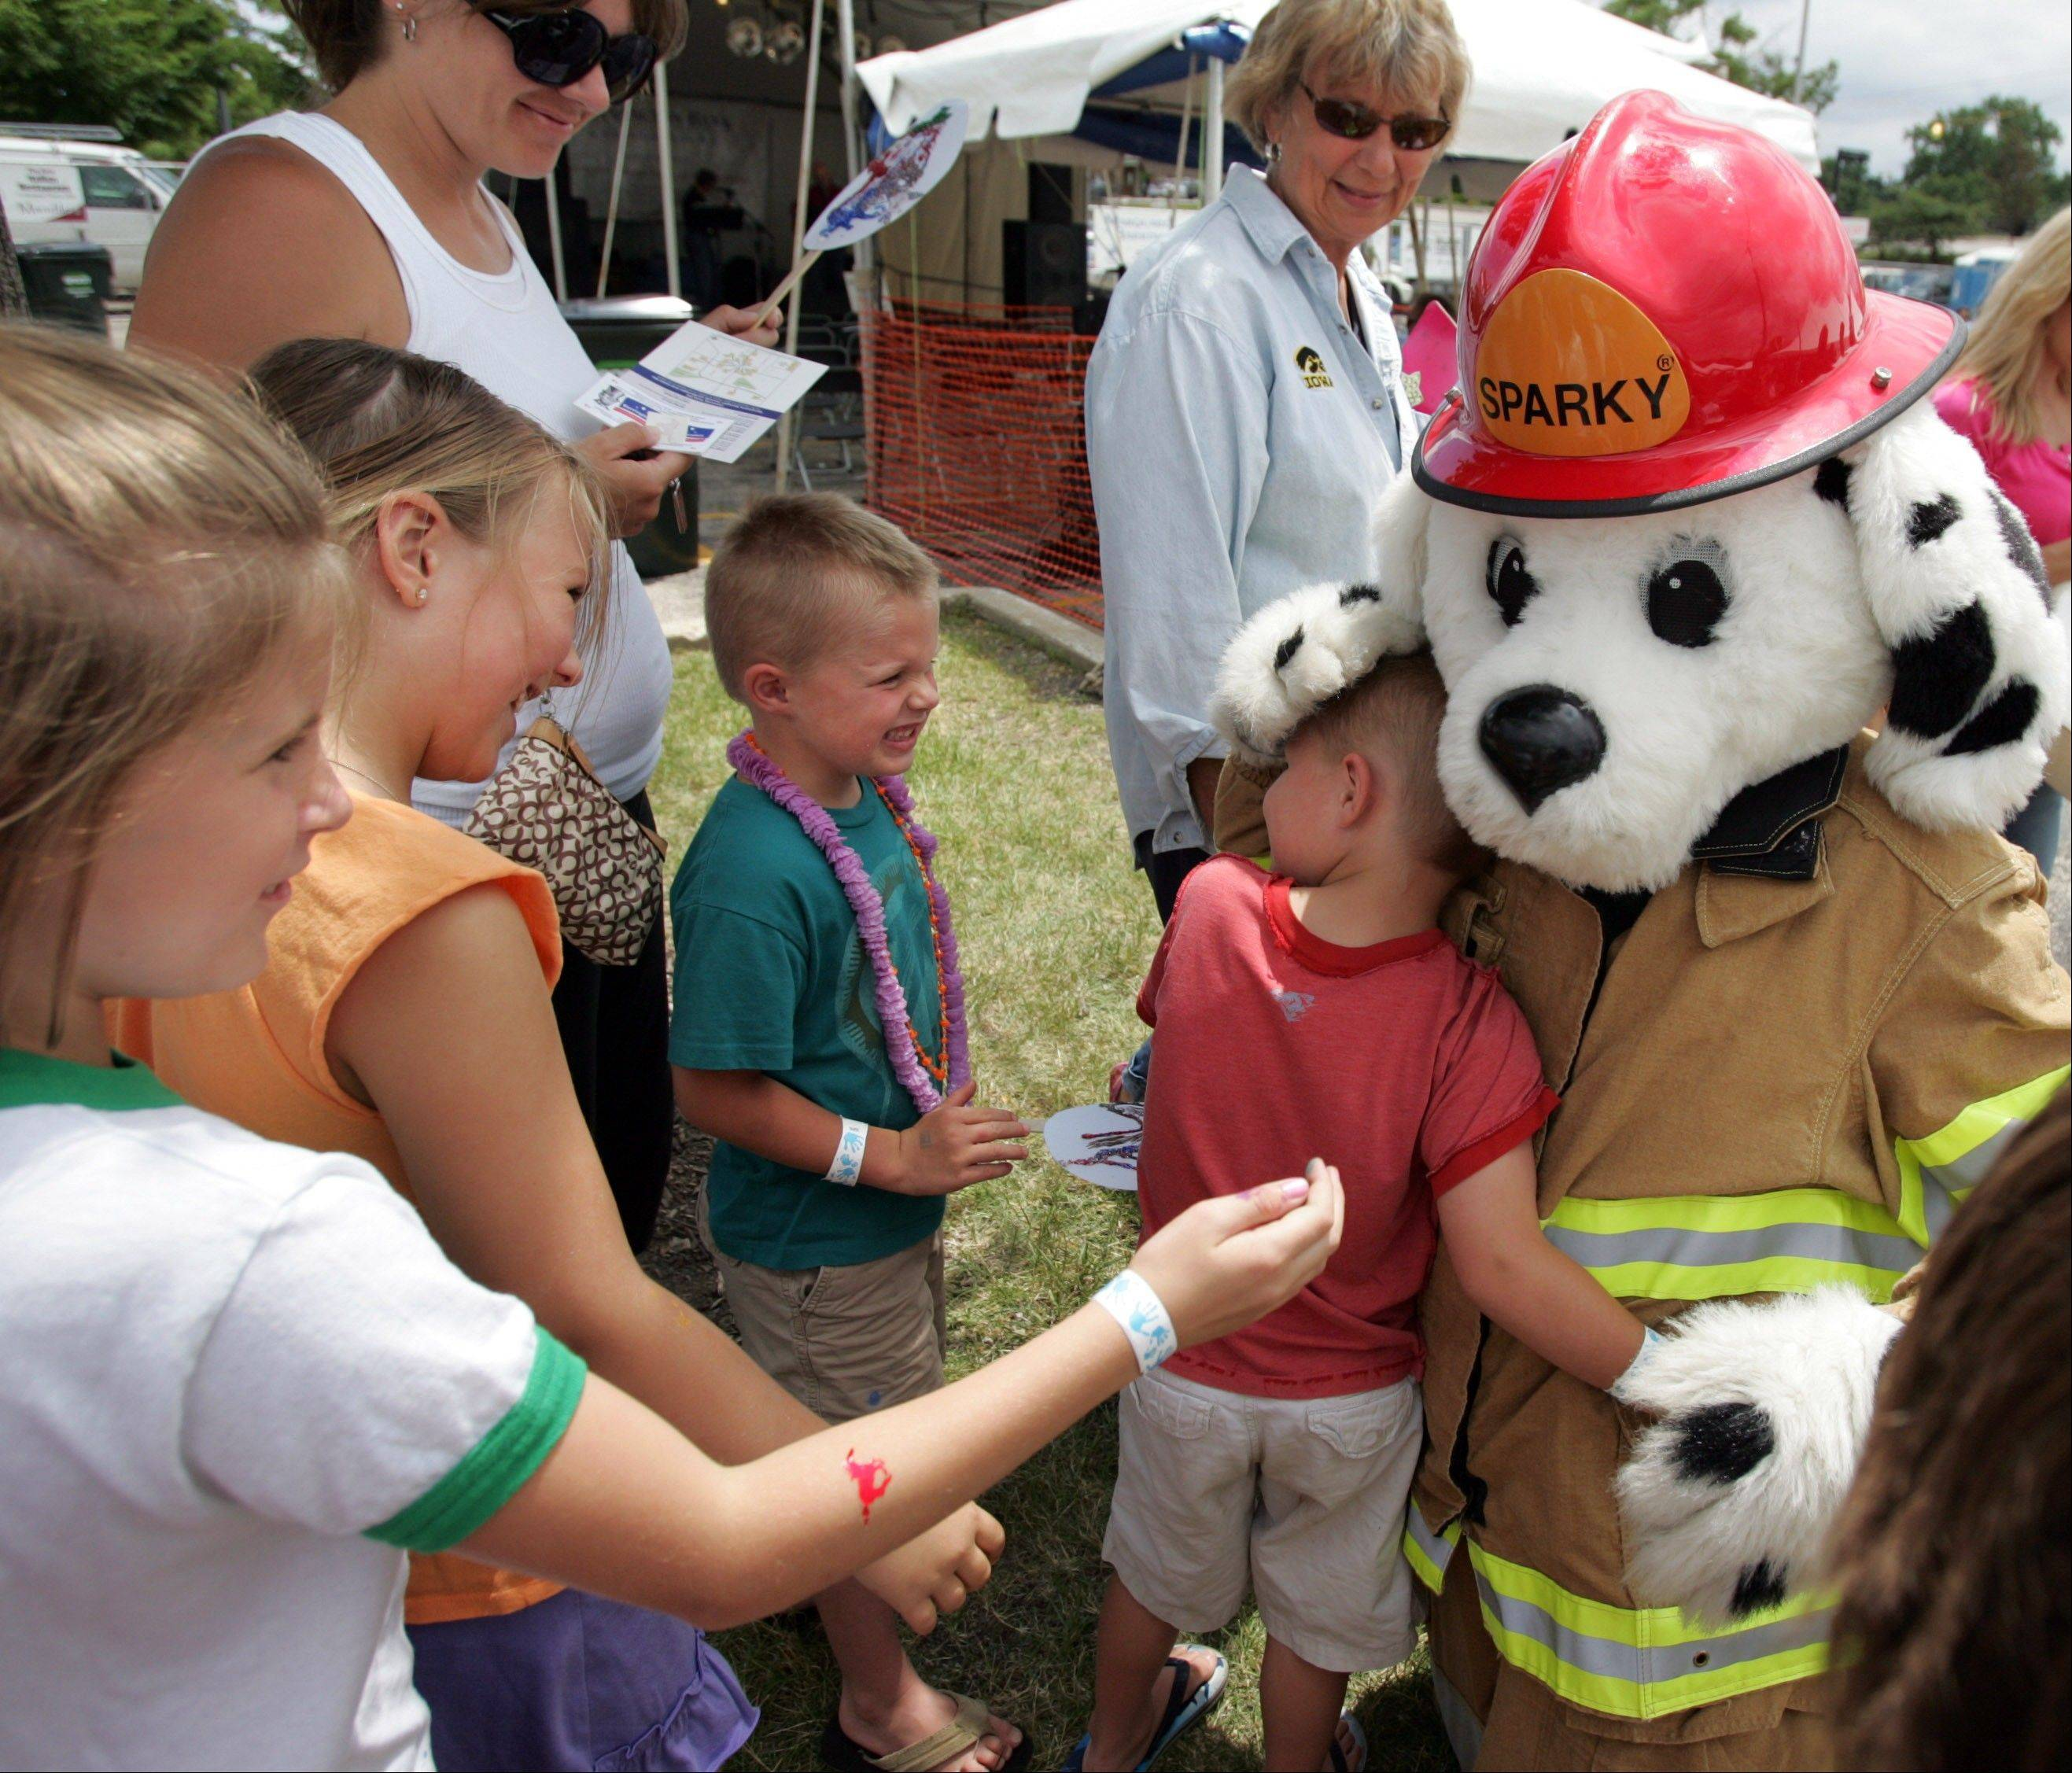 Sparky, with the Barrington Fire Department, makes his way around the fest, hugging and high-fiving kids.